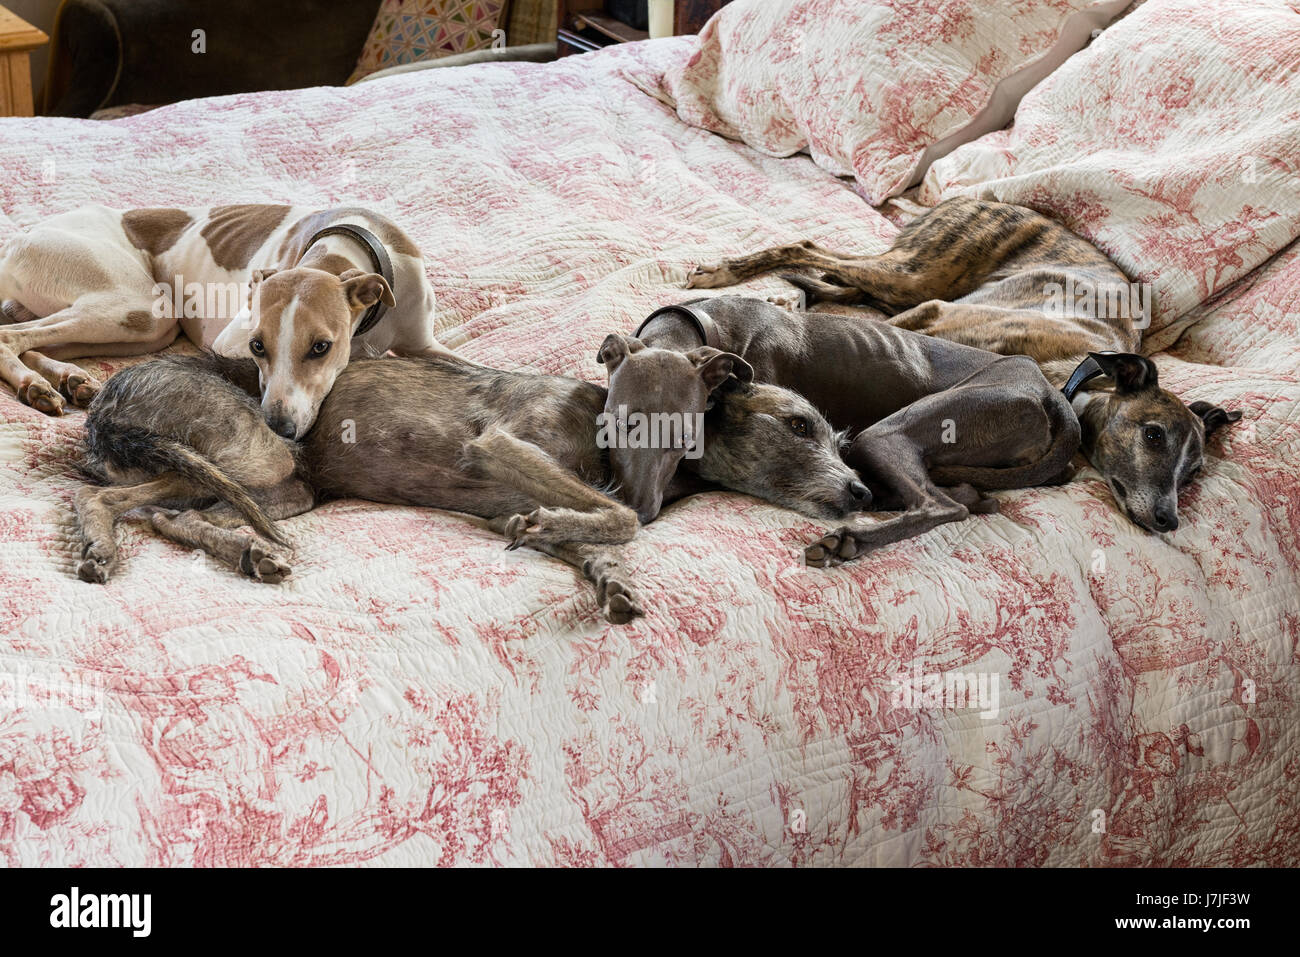 Four small lurchers on a quilted toile de jouy bed cover - Stock Image